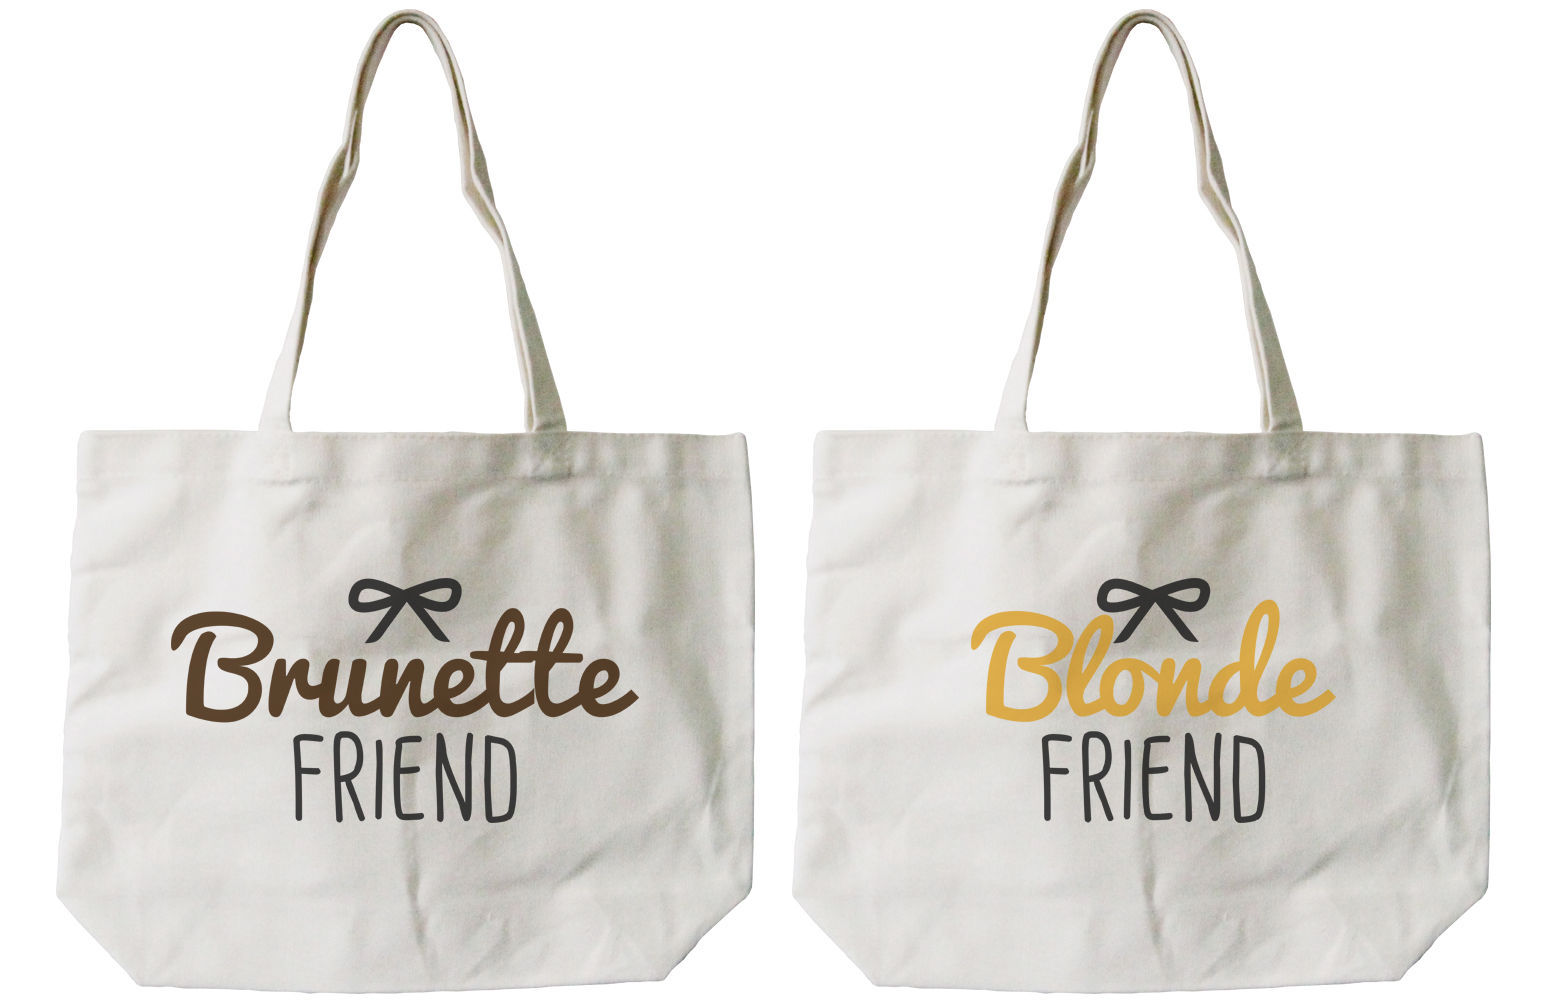 Brunette and Blonde Best Friend Cotton Canvas Tote Bags - Eco Bags, Book Bags